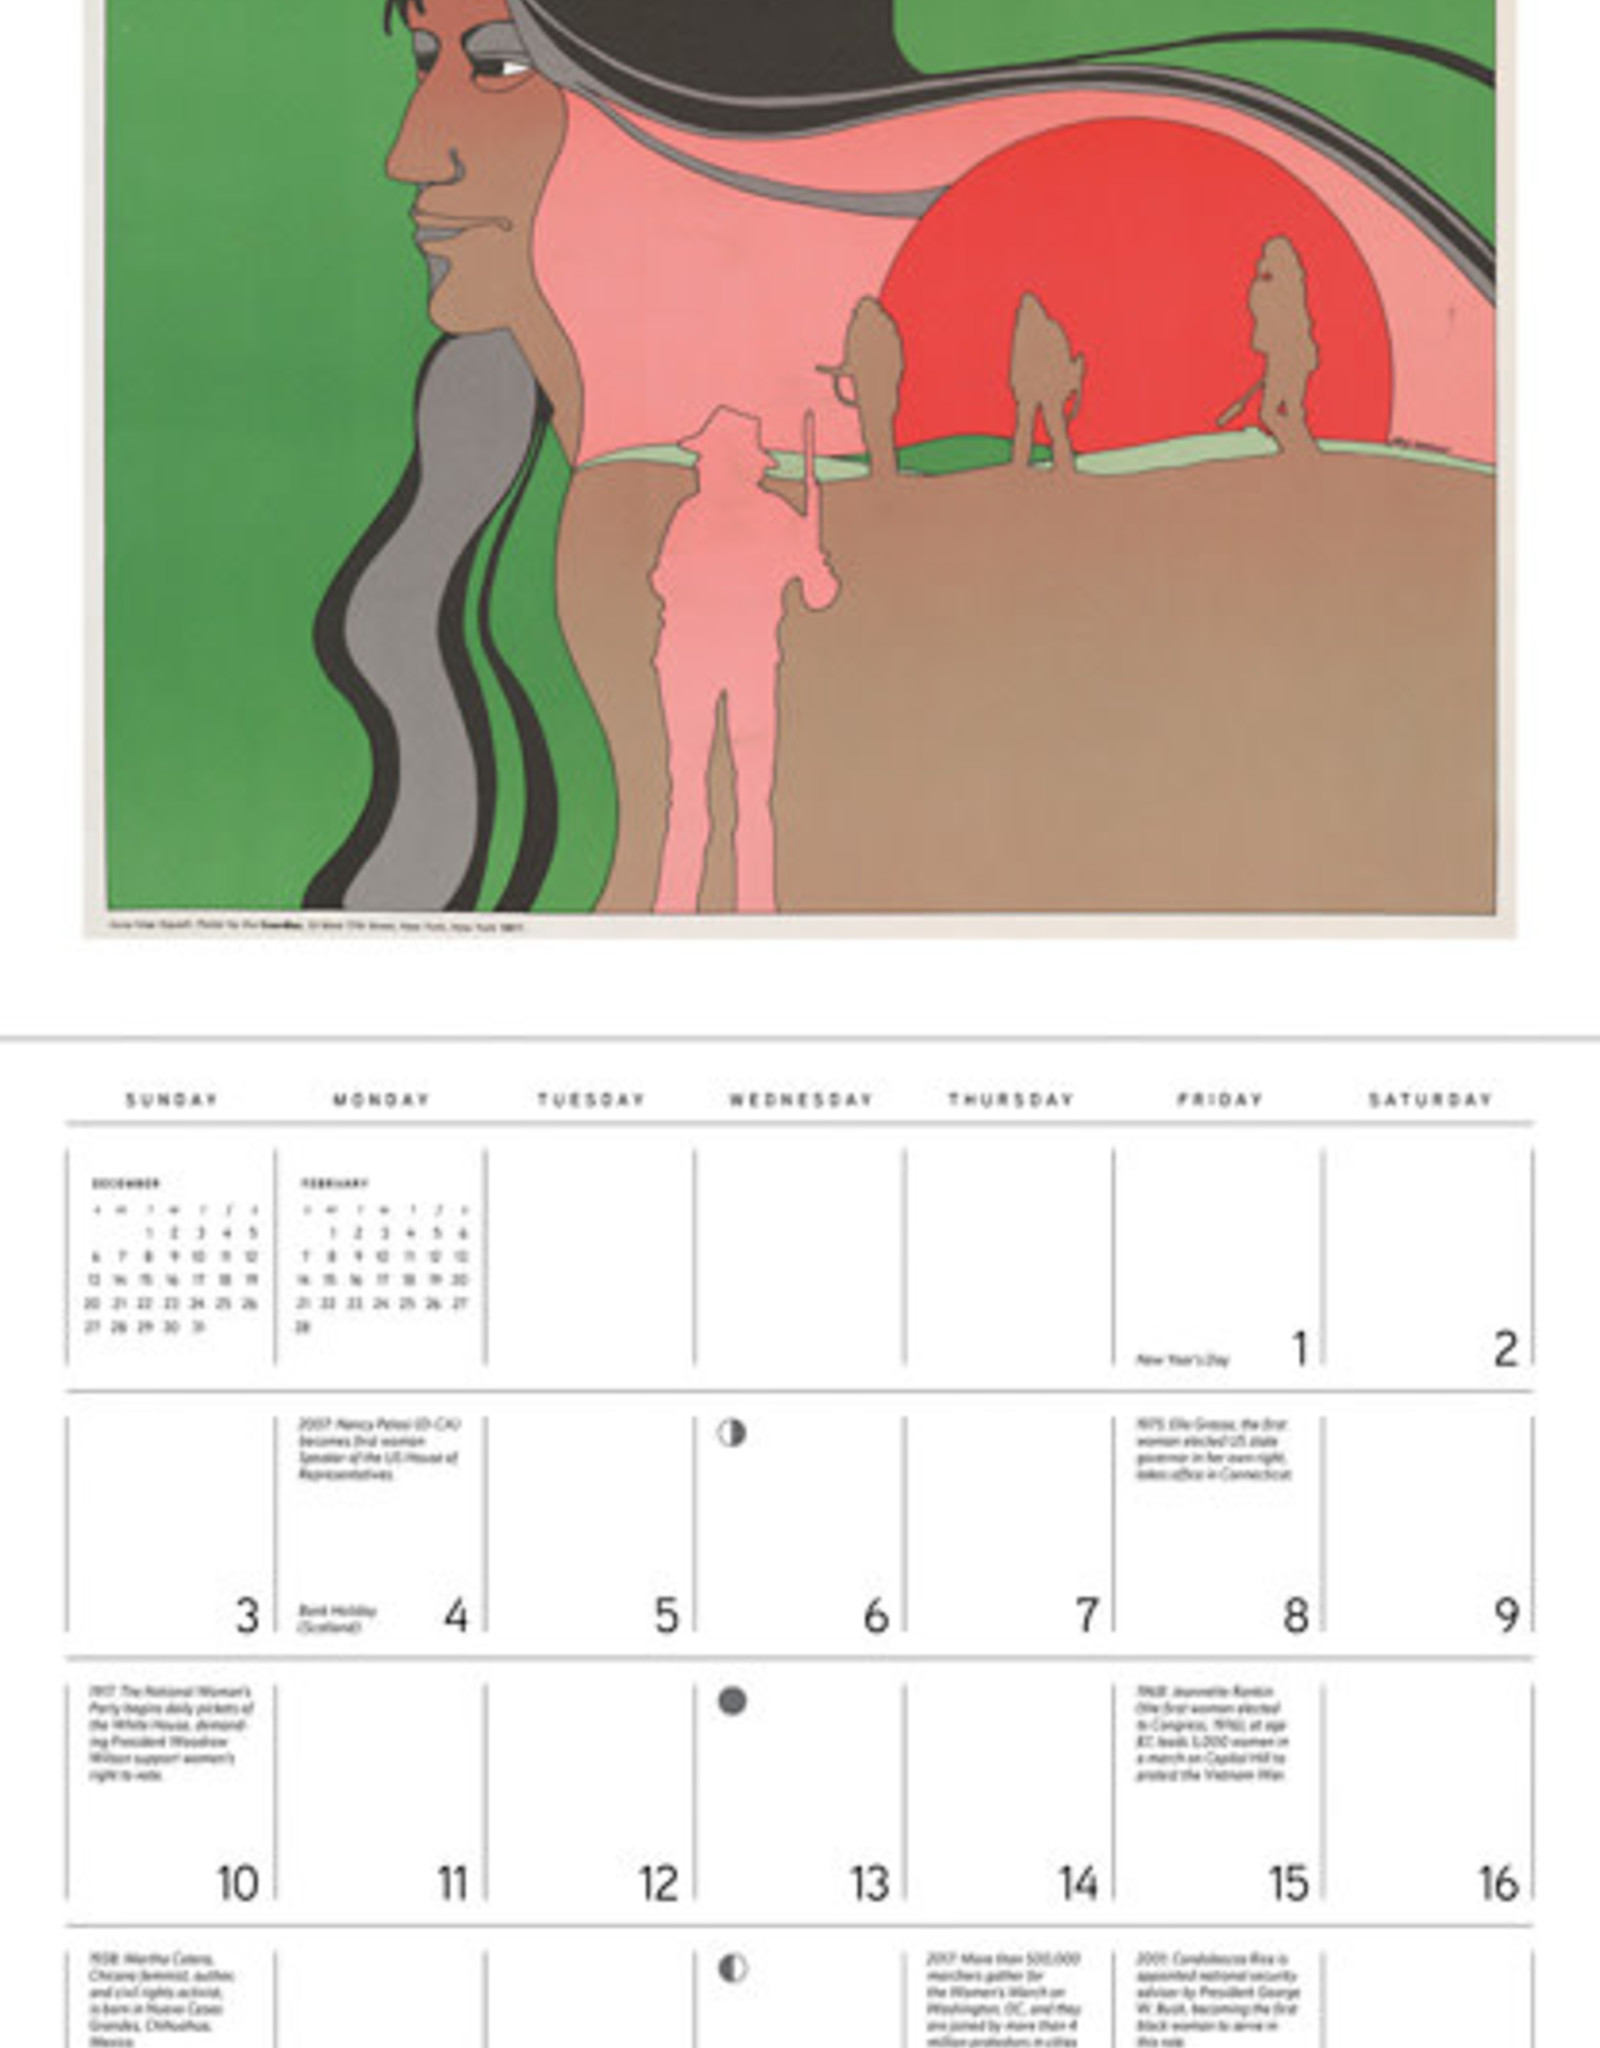 POMEGRANATE 2021 Wall Calendar: The Fight for Women's Rights